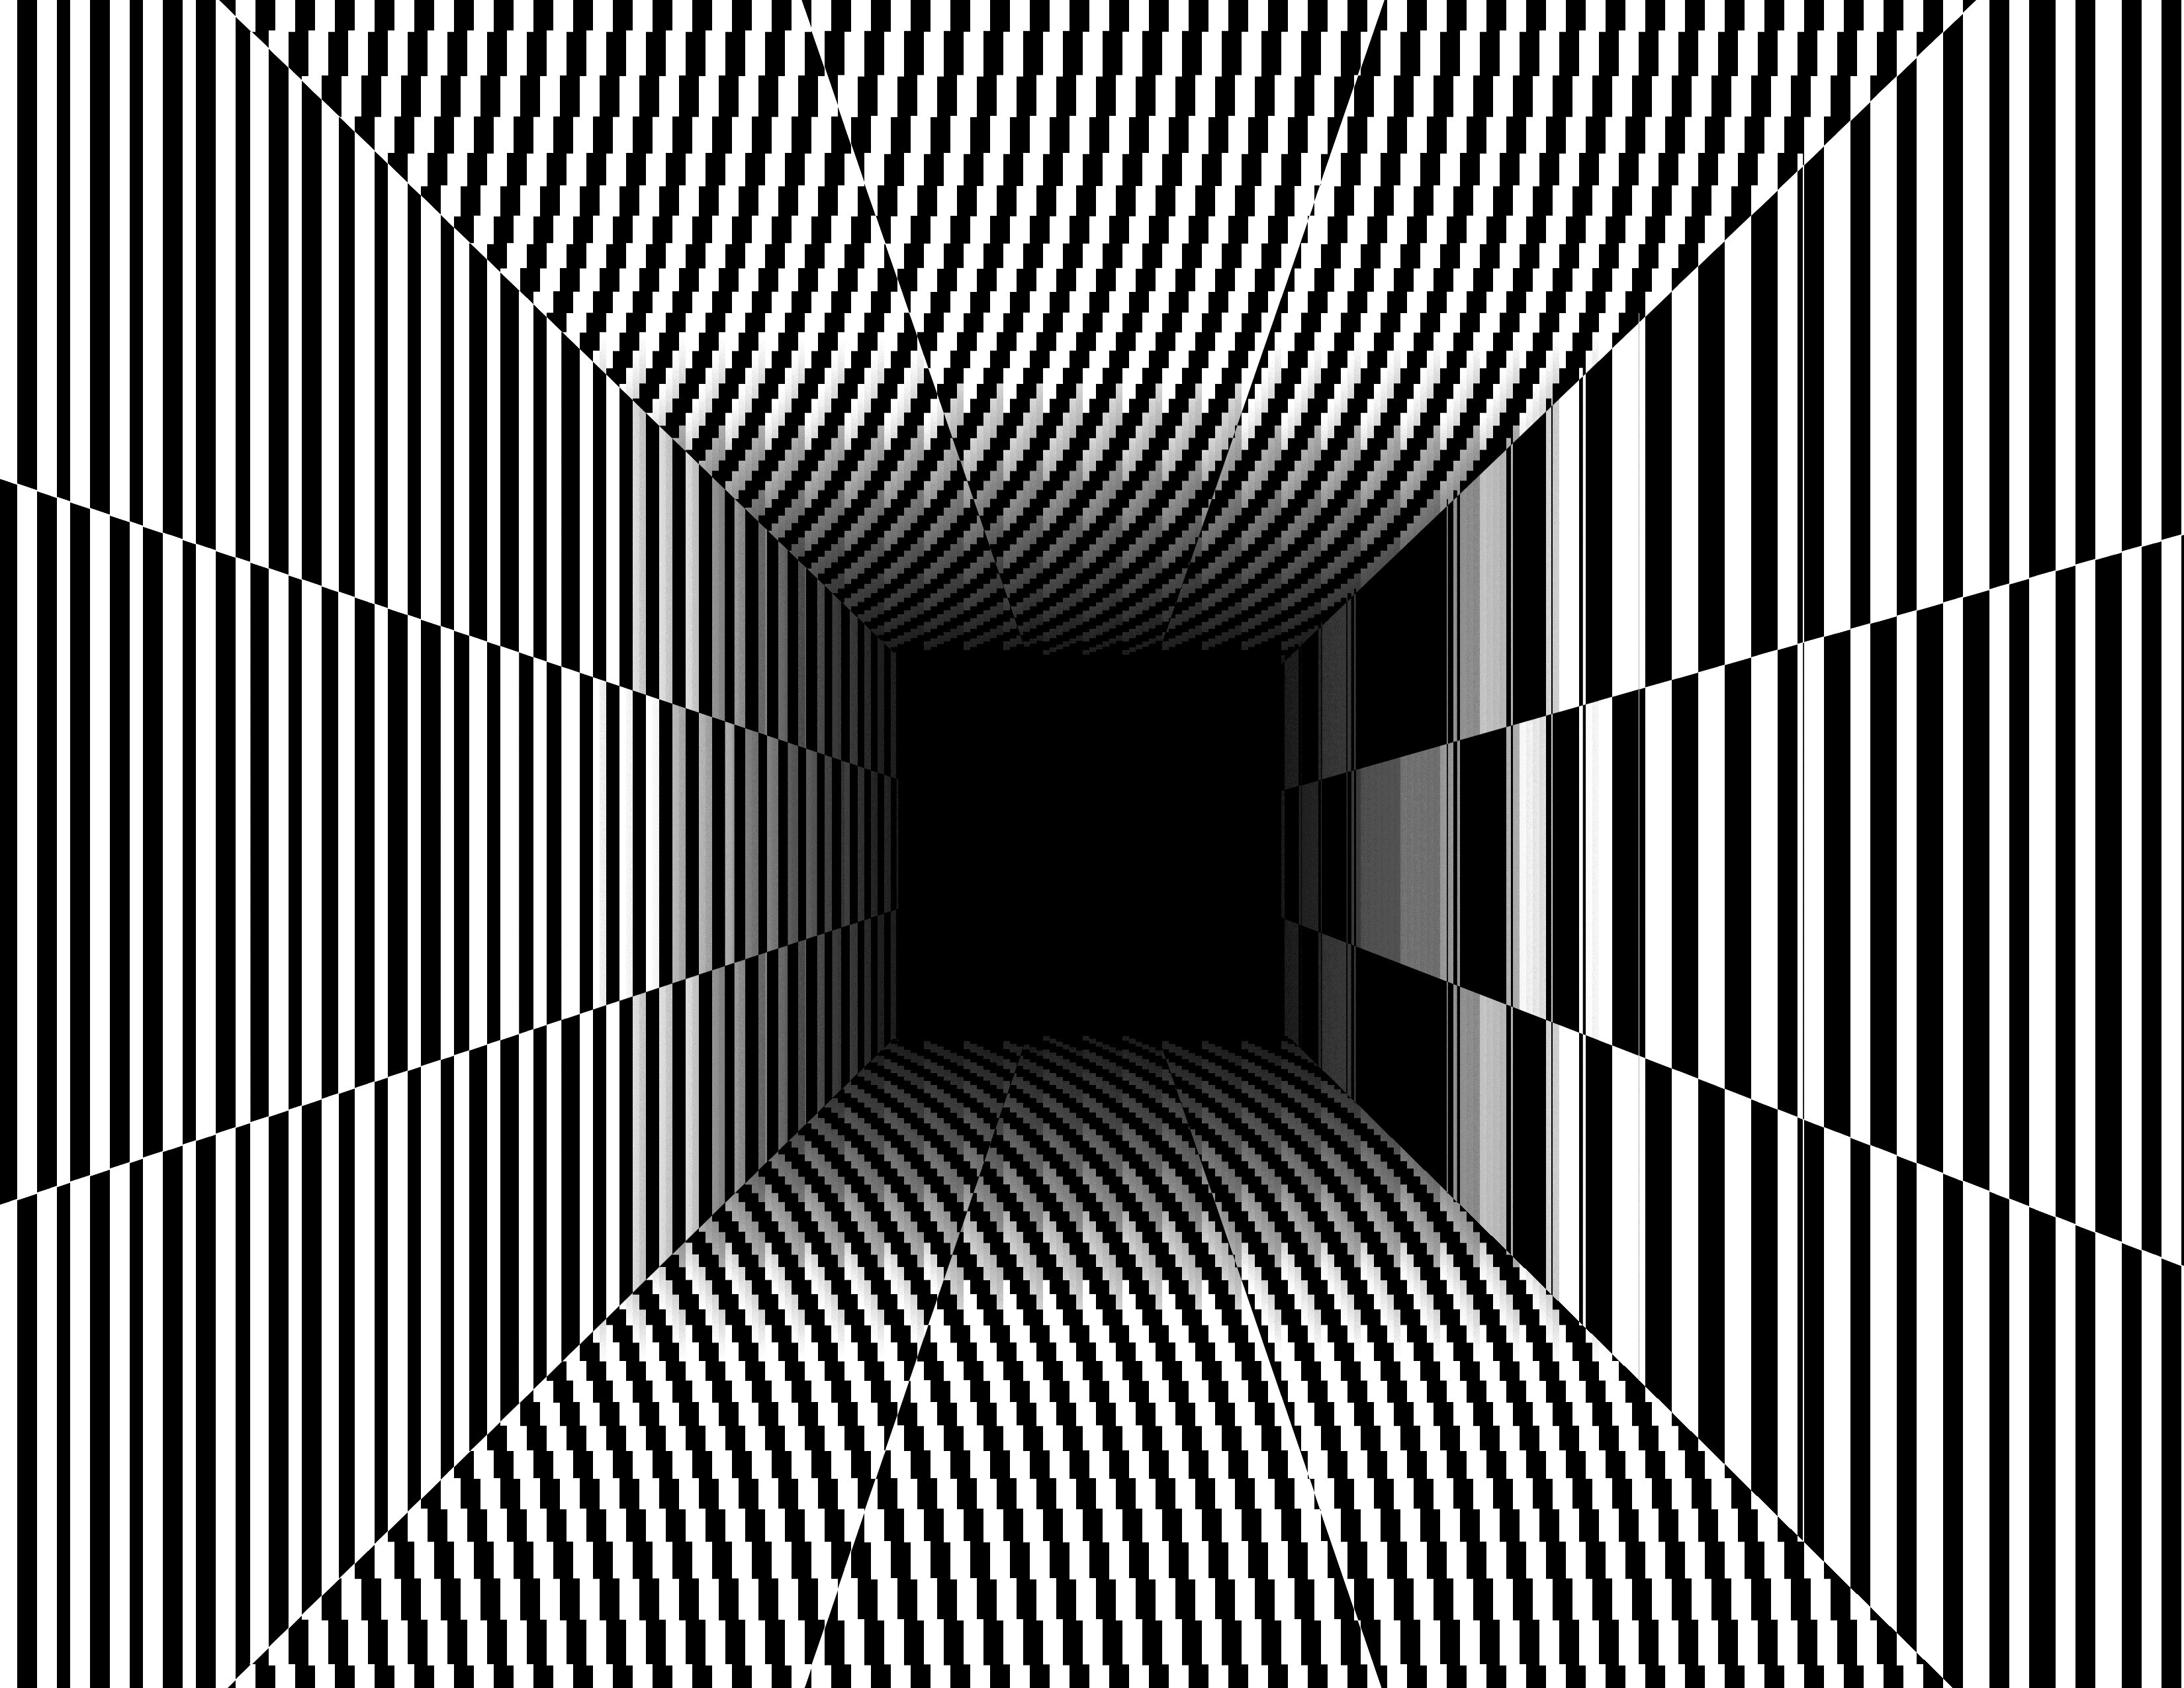 Optical Illusion clipart animated Illusions Optical Album Animated Imgur